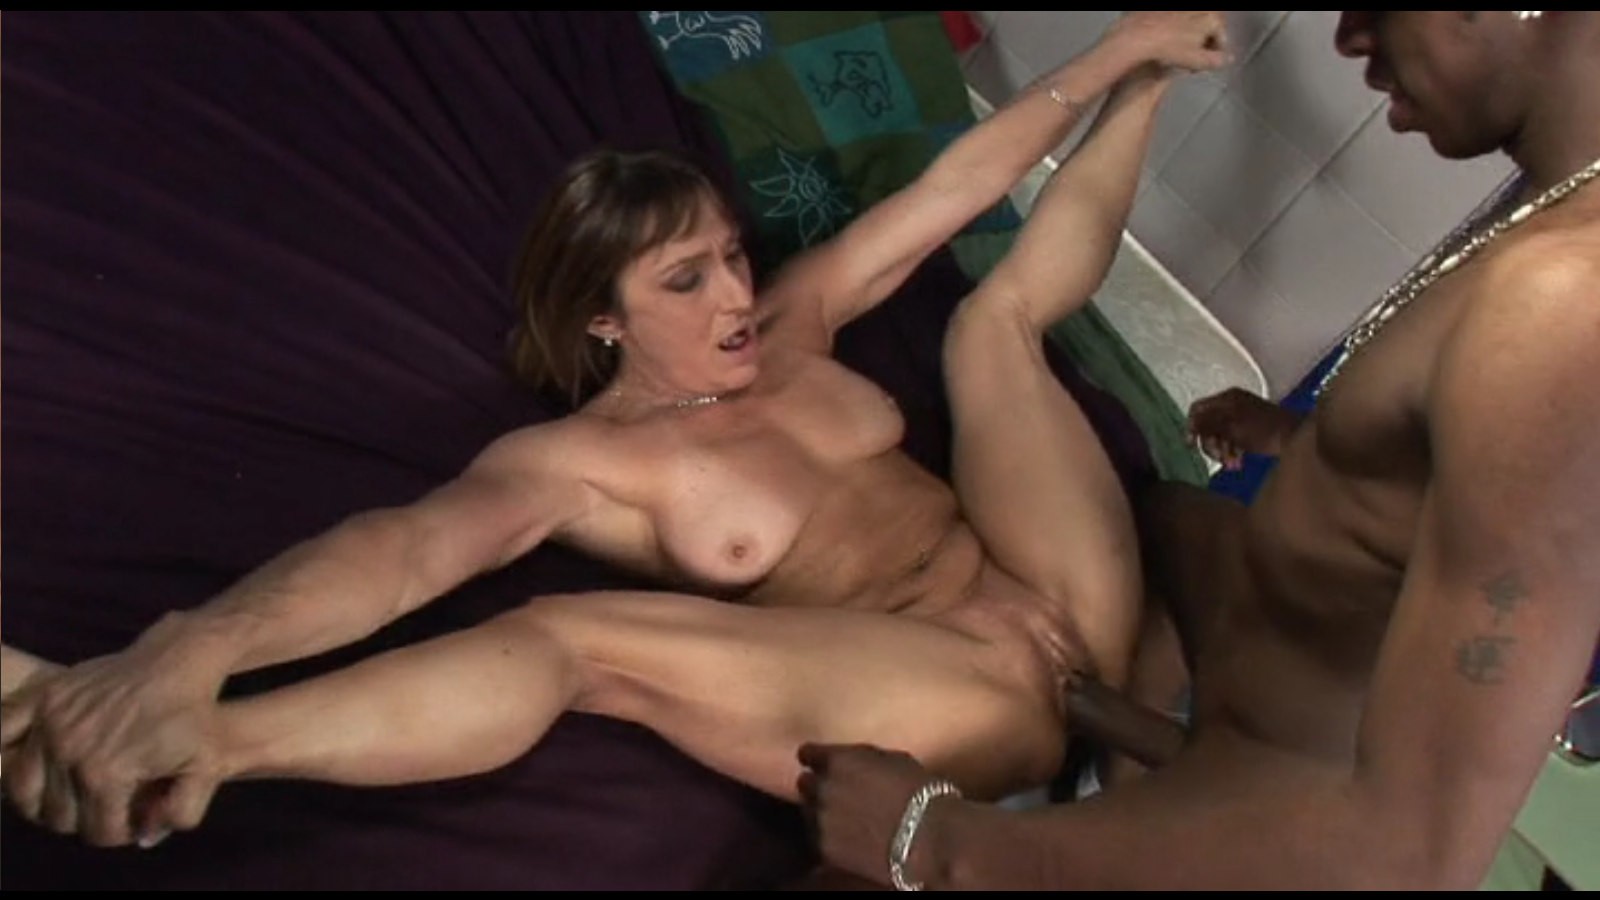 Casually Jillian foxxx mature anal tube will not